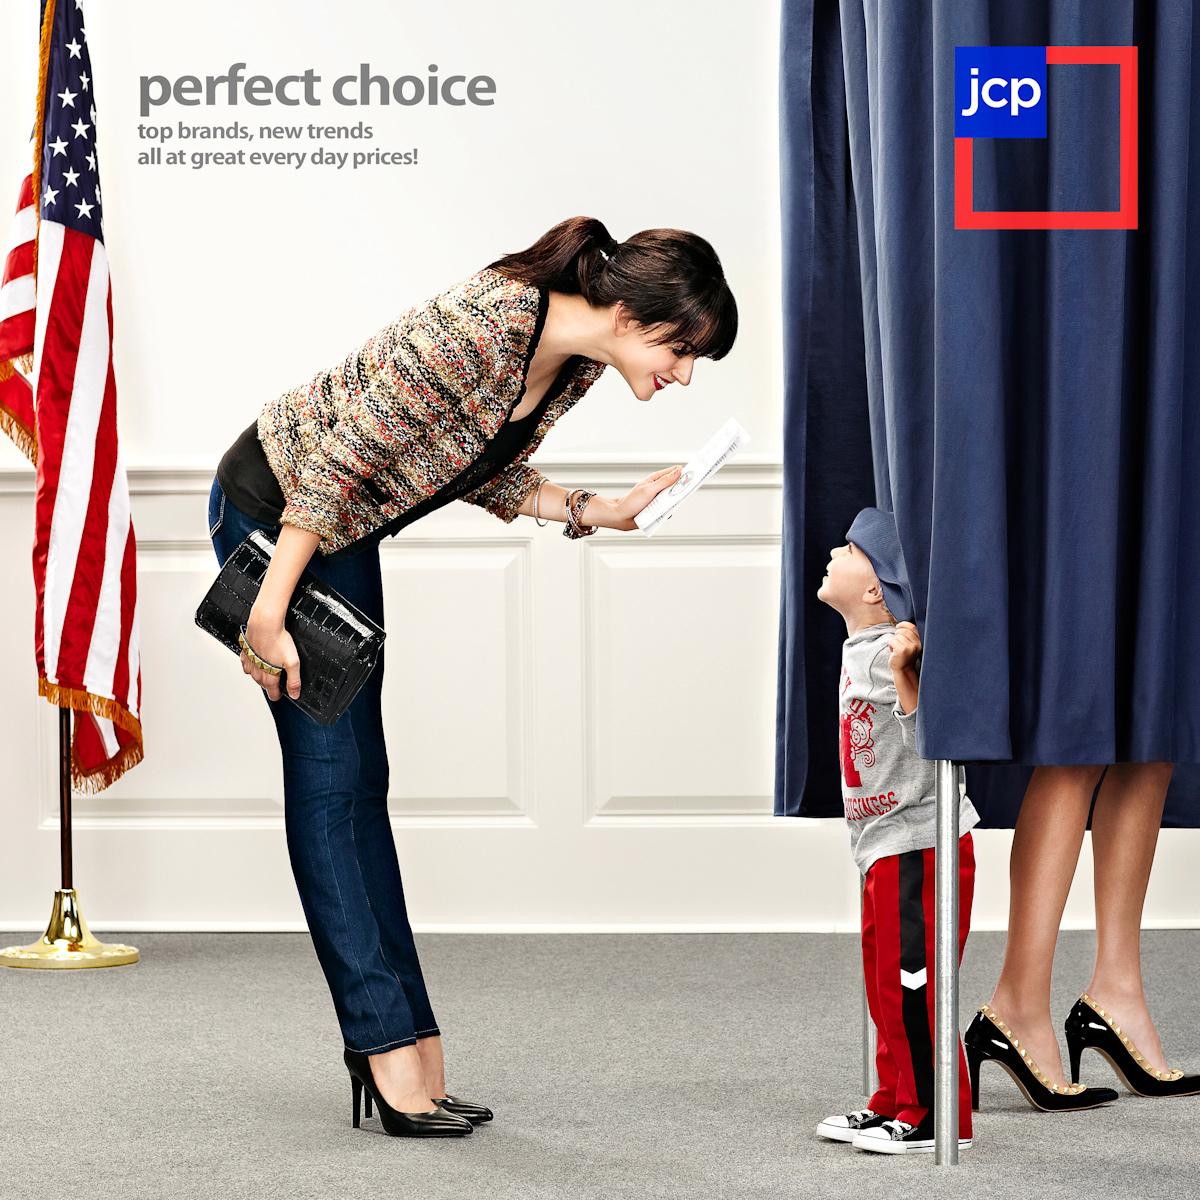 3-JCP-COVER---voting-booth